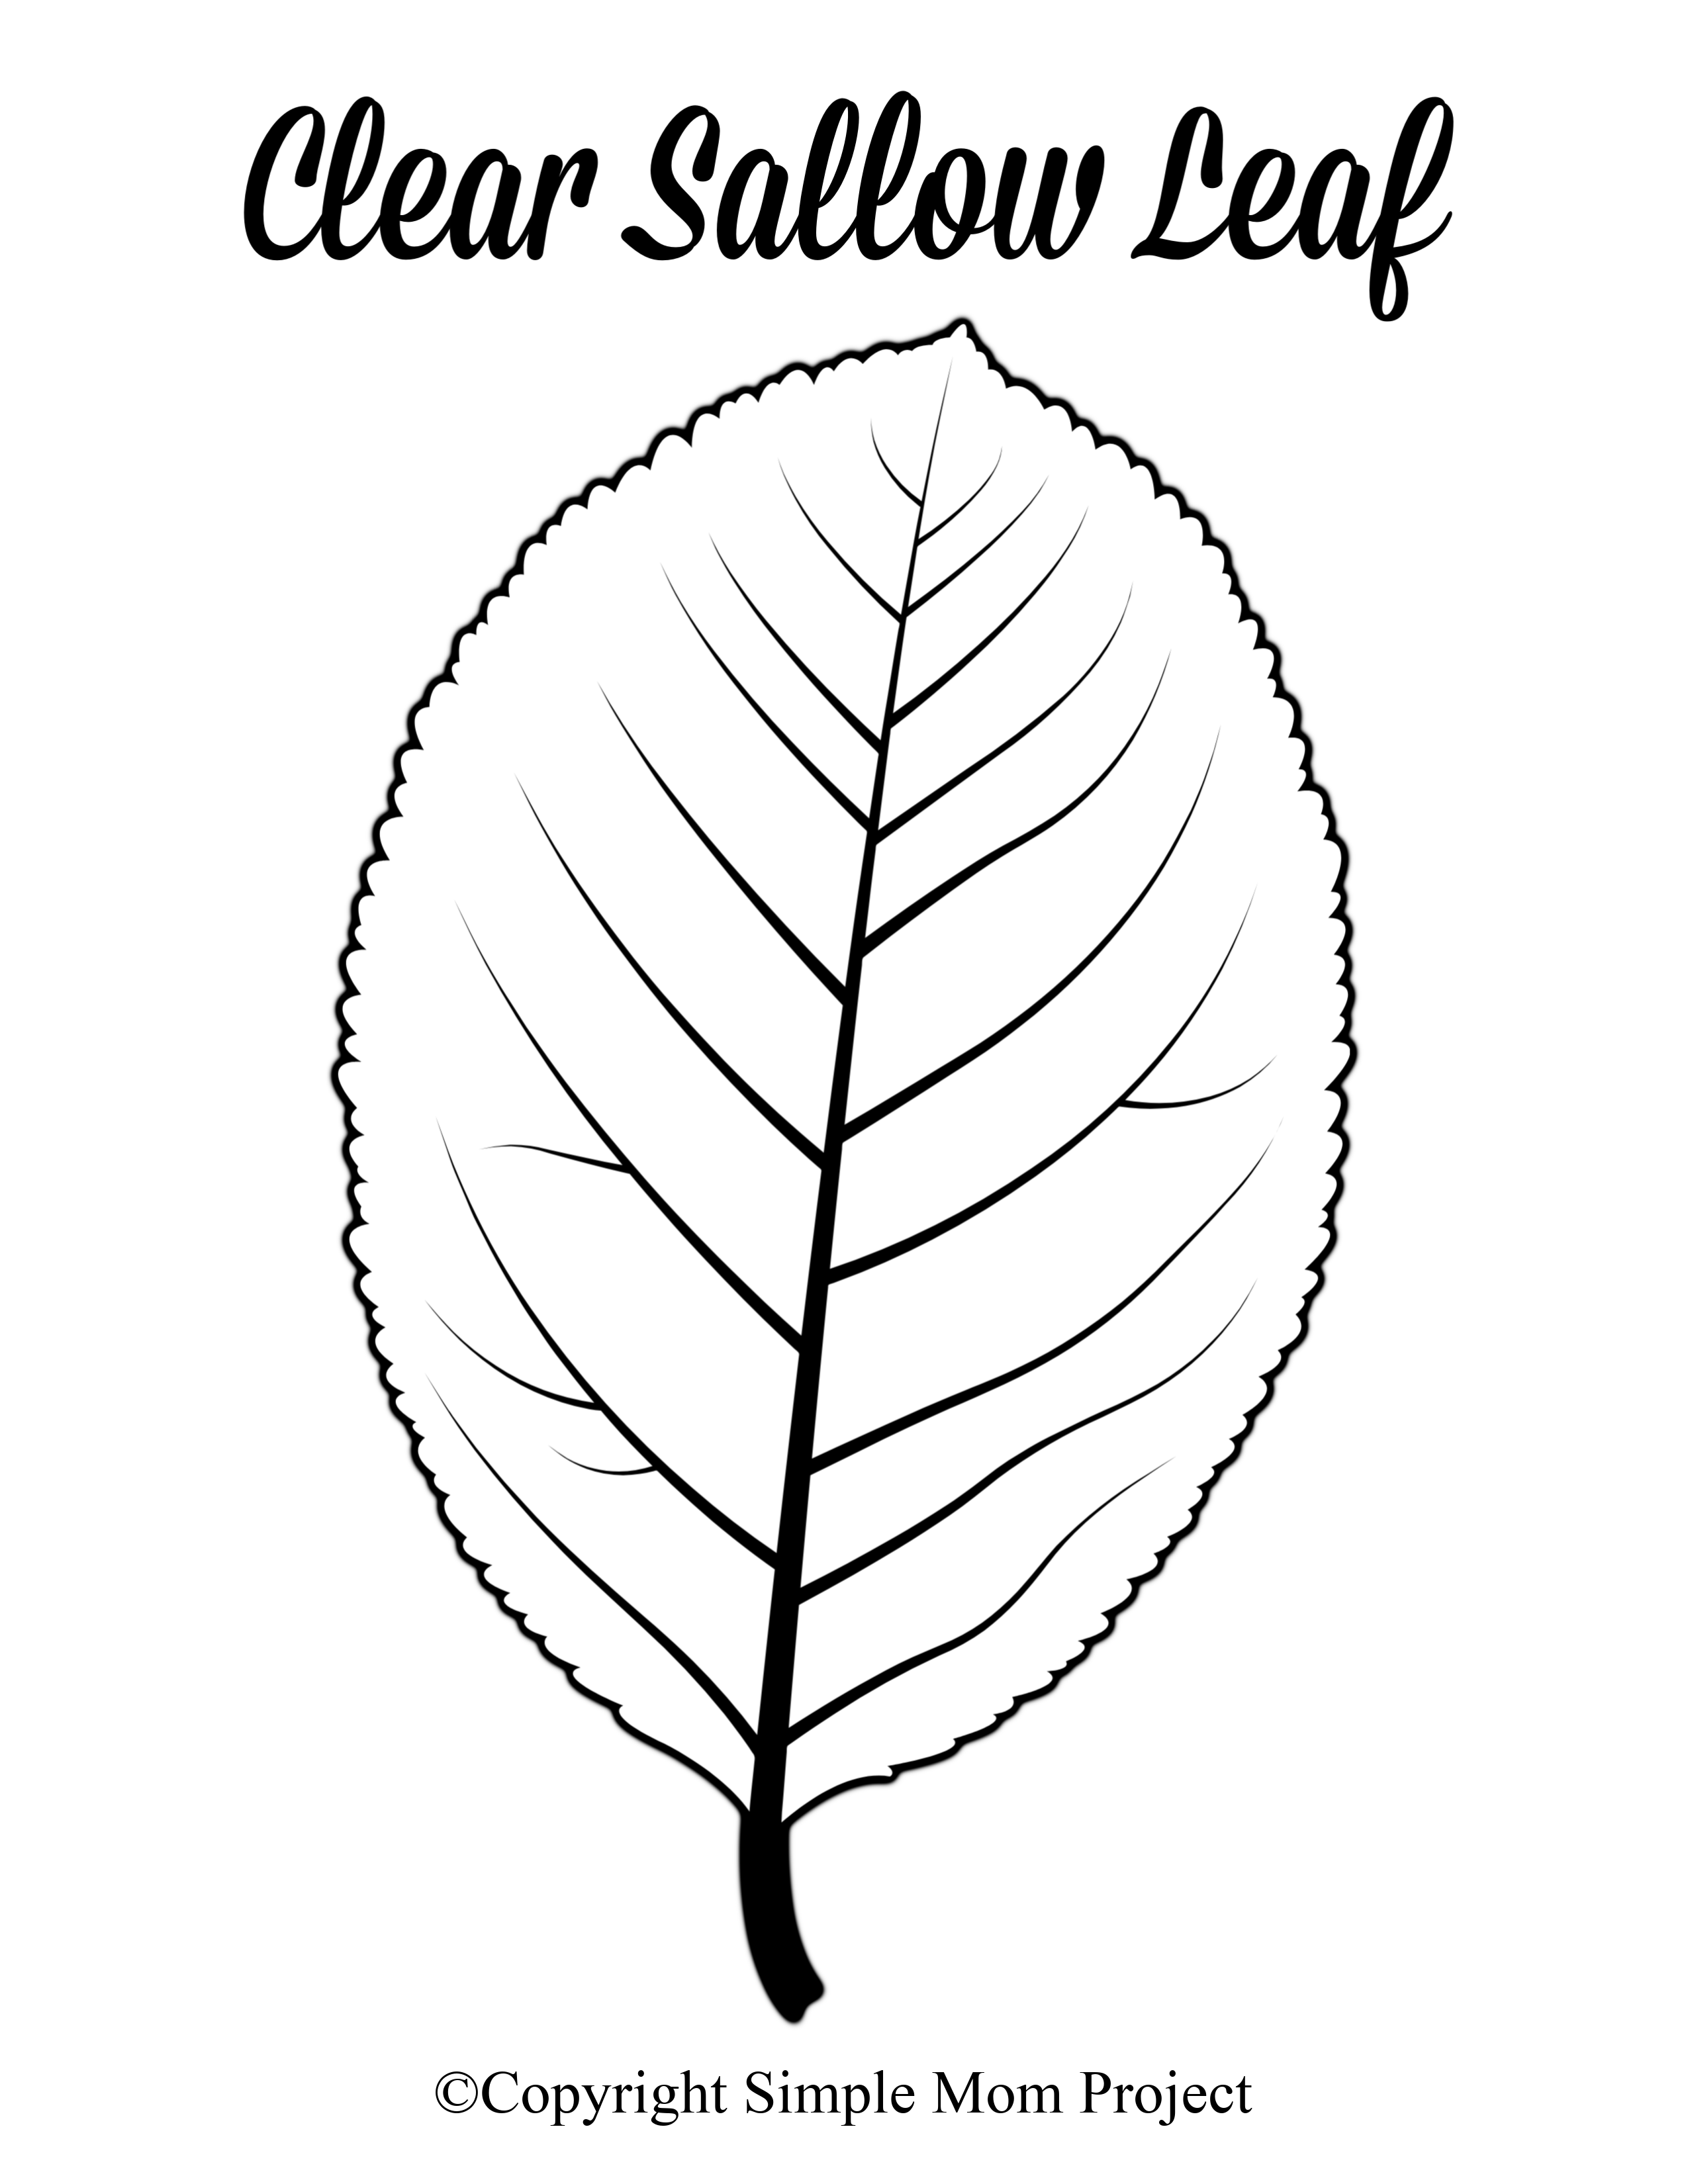 Free Printable Large Leaf Templates, Stencils and Patterns - Simple Mom  Project | Leaf template, Leaf template printable, Leaf coloring page